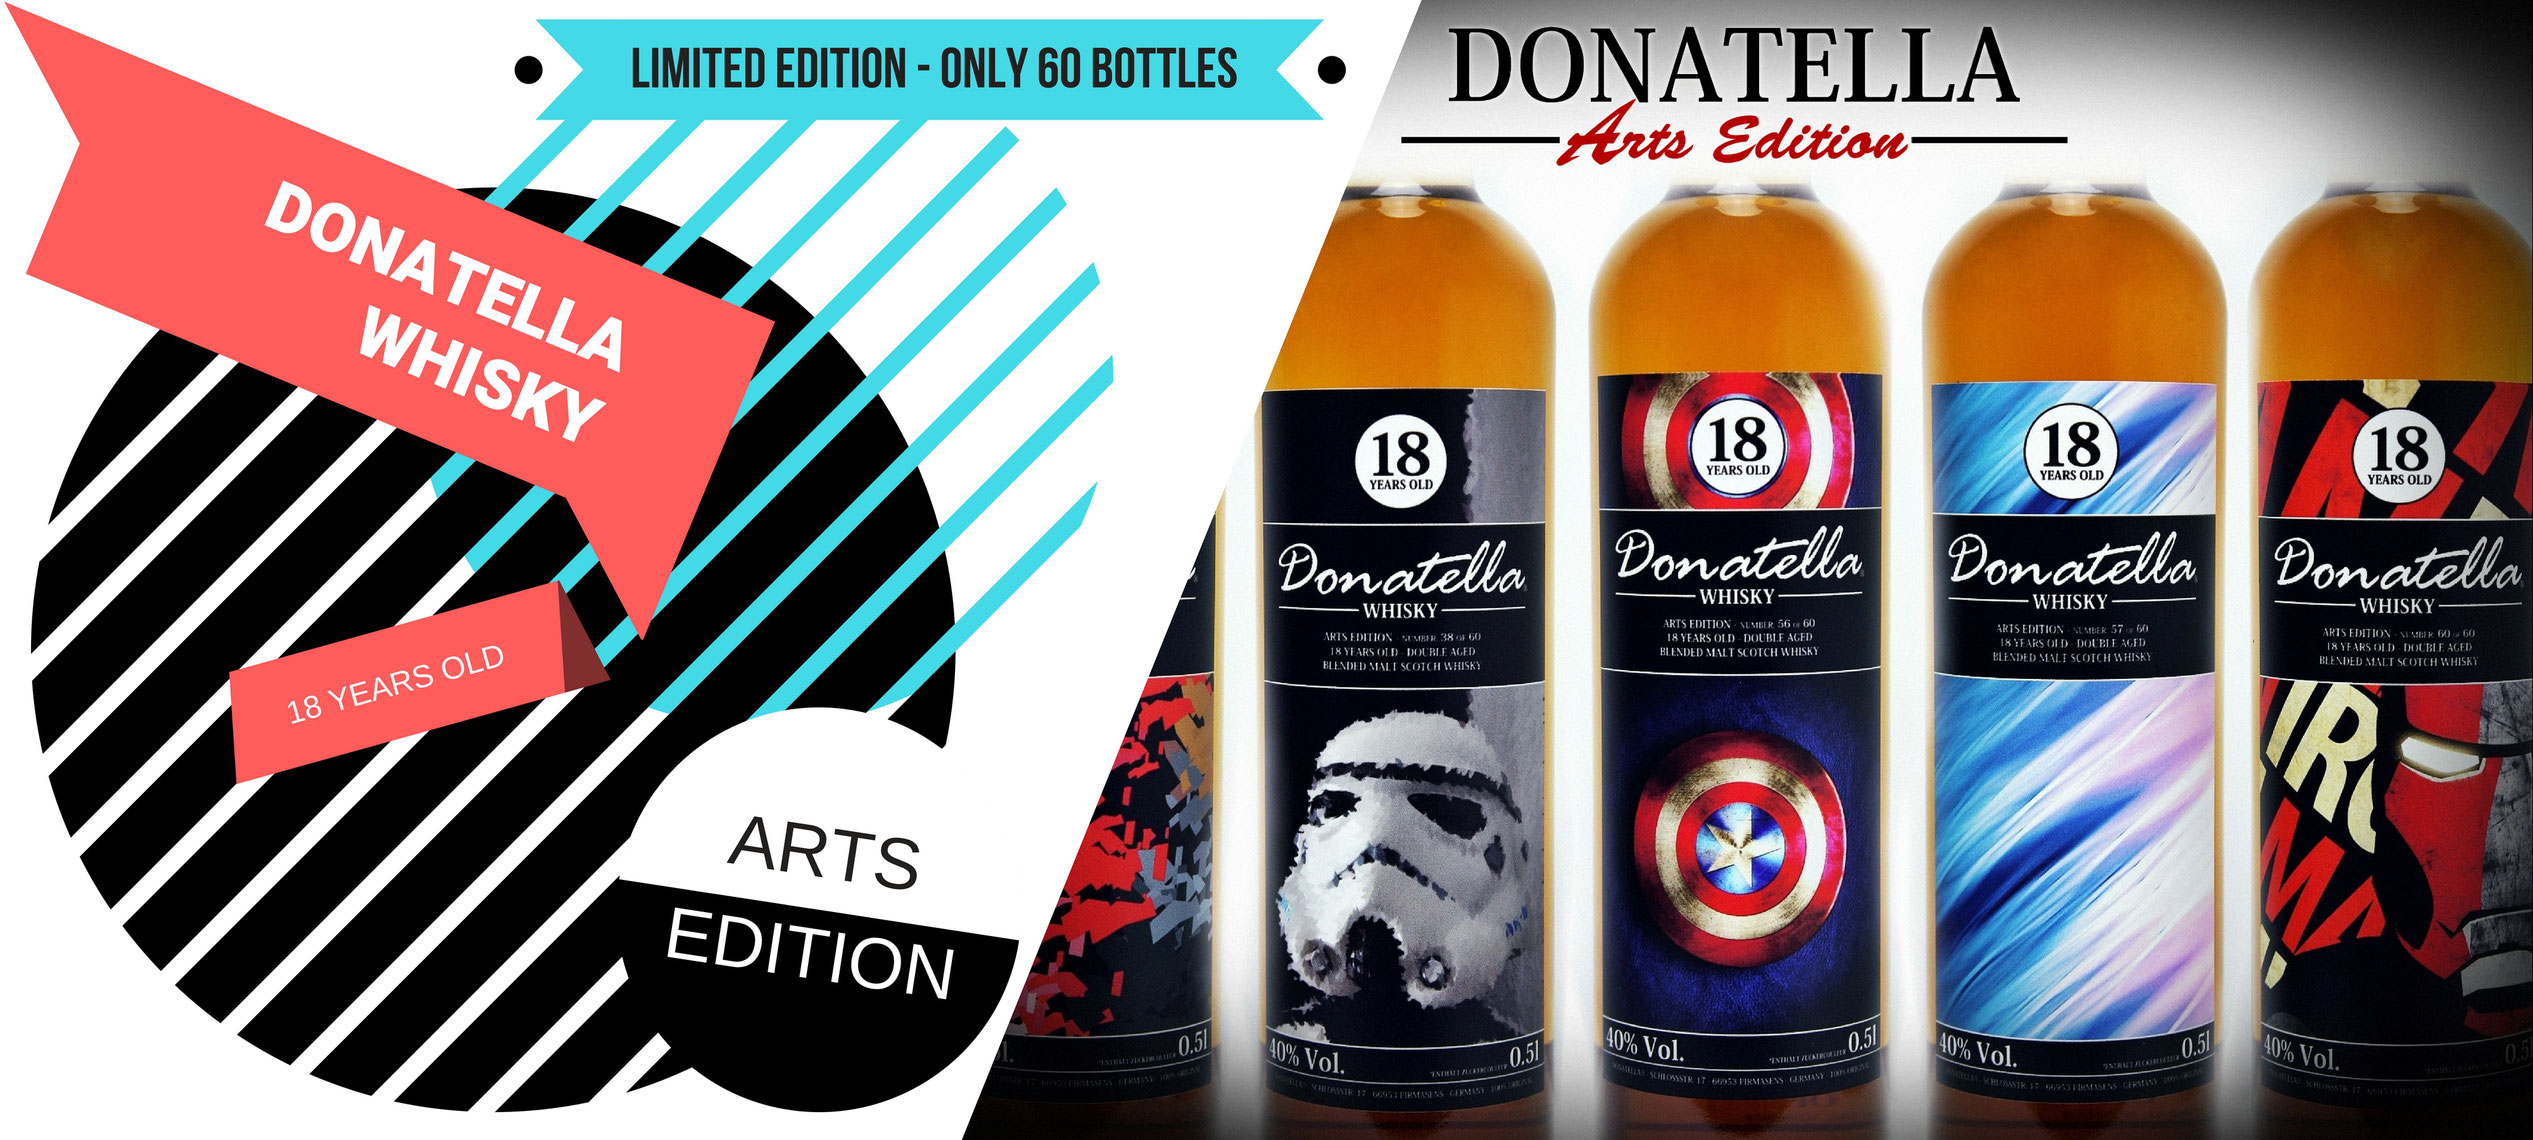 Donatella Whisky Limited Collectors Arts Edition